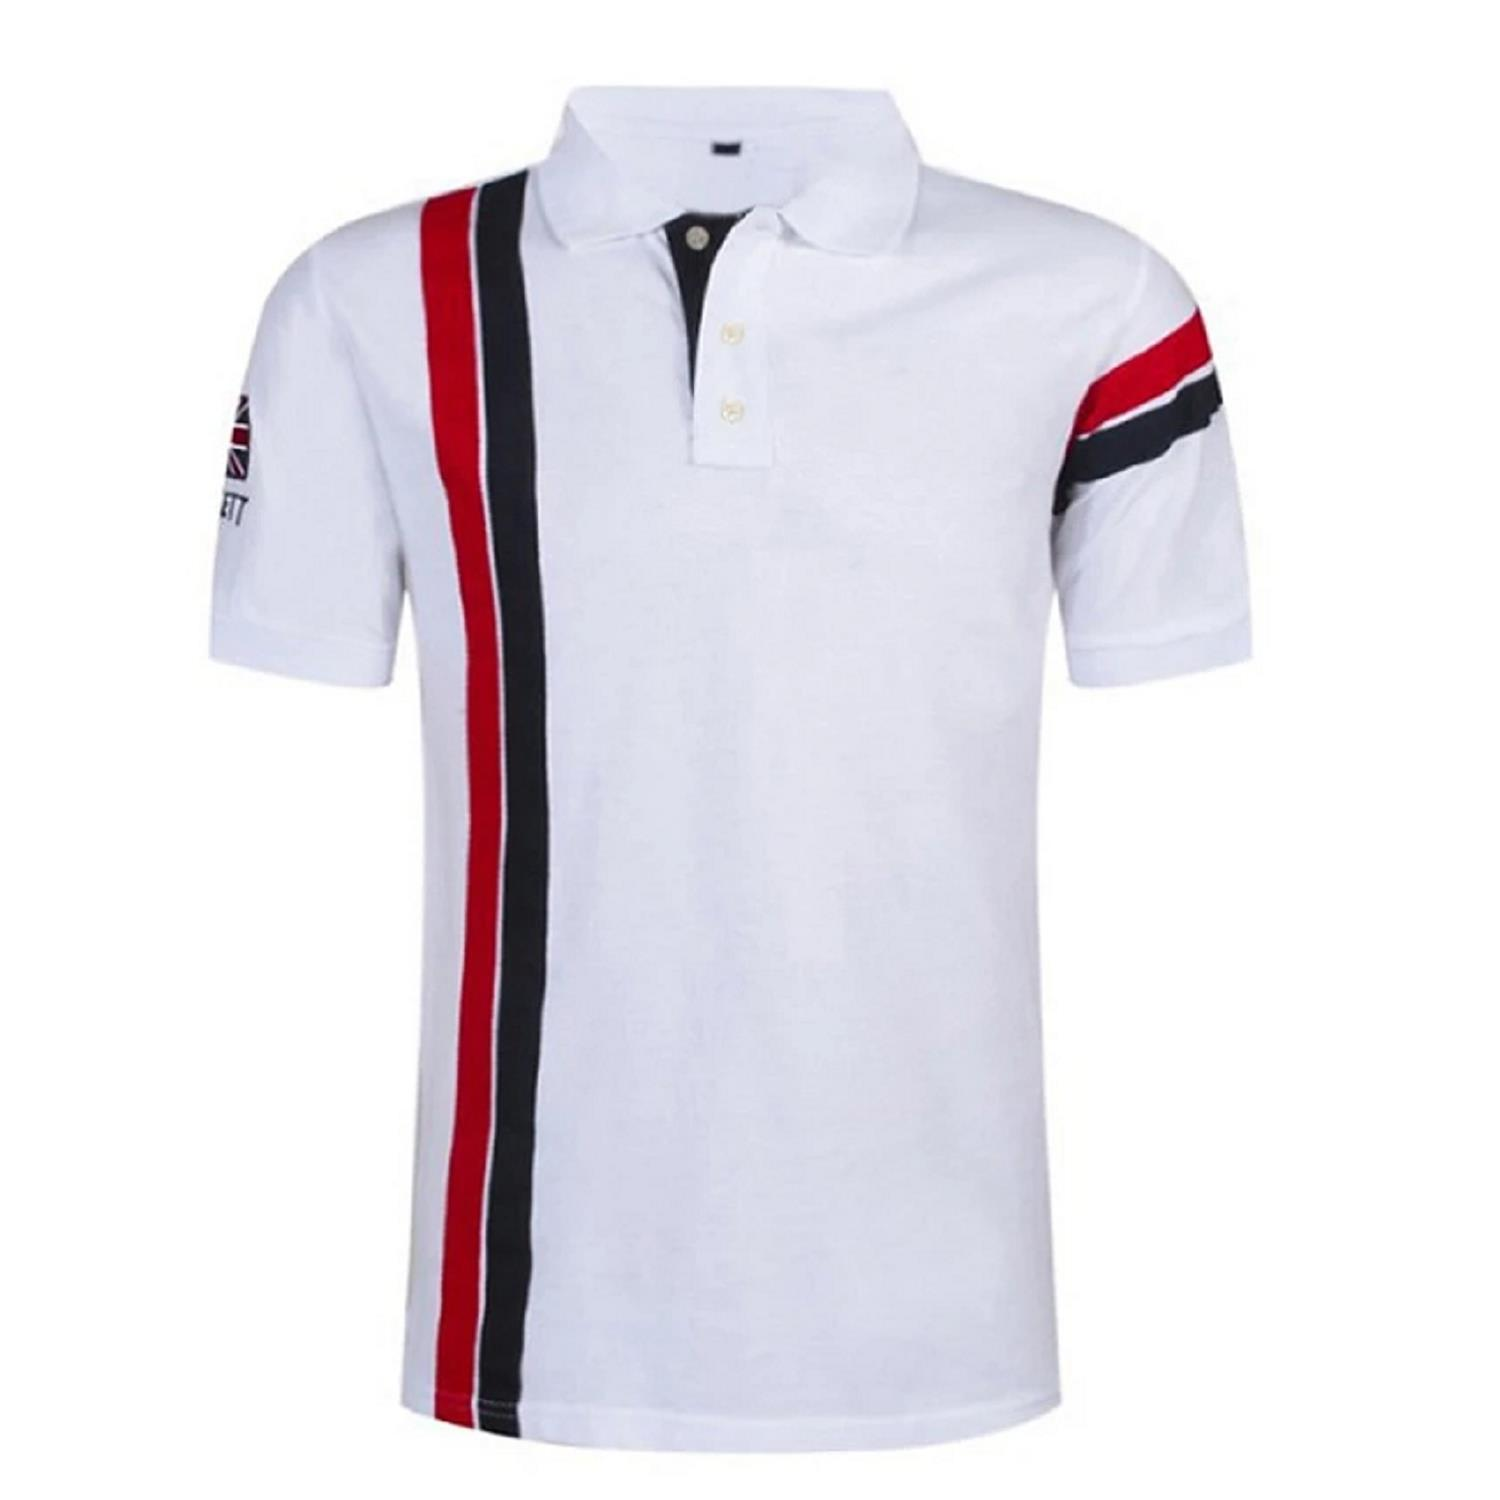 Men's POLO Golf Shirt Tennis Striped Short Sleeve Sports & Outdoor Tops Casual Daily Sporty Collar White British style Red Navy Blue